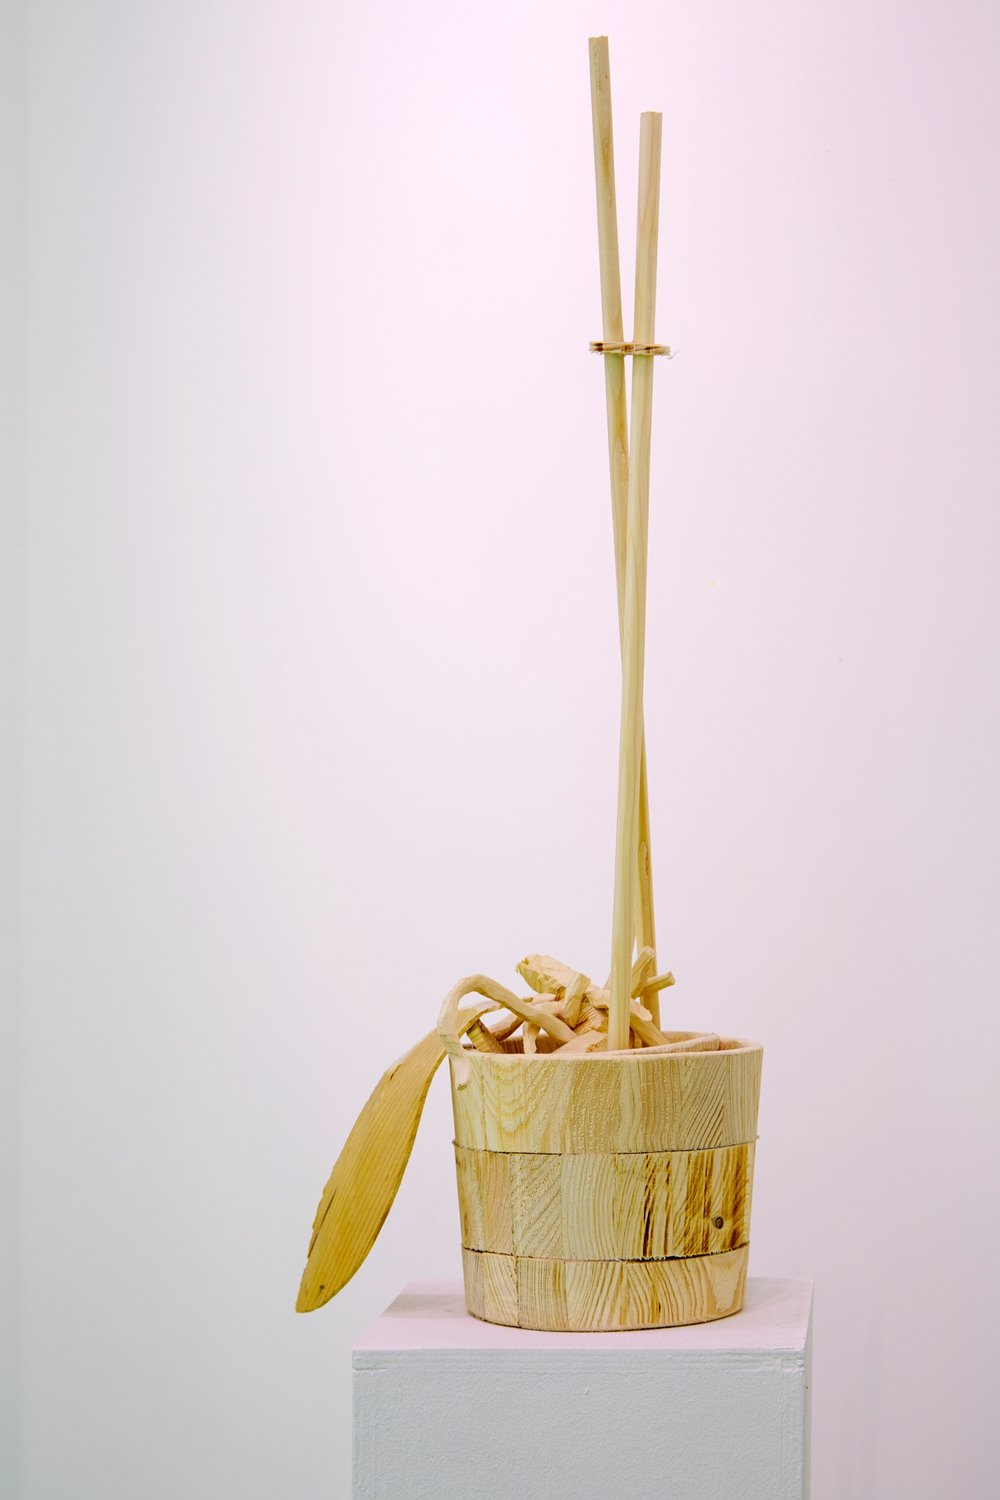 Dead Orchid 2017, wood 60 x 23 x 15 cm ed. of 3, 1/3